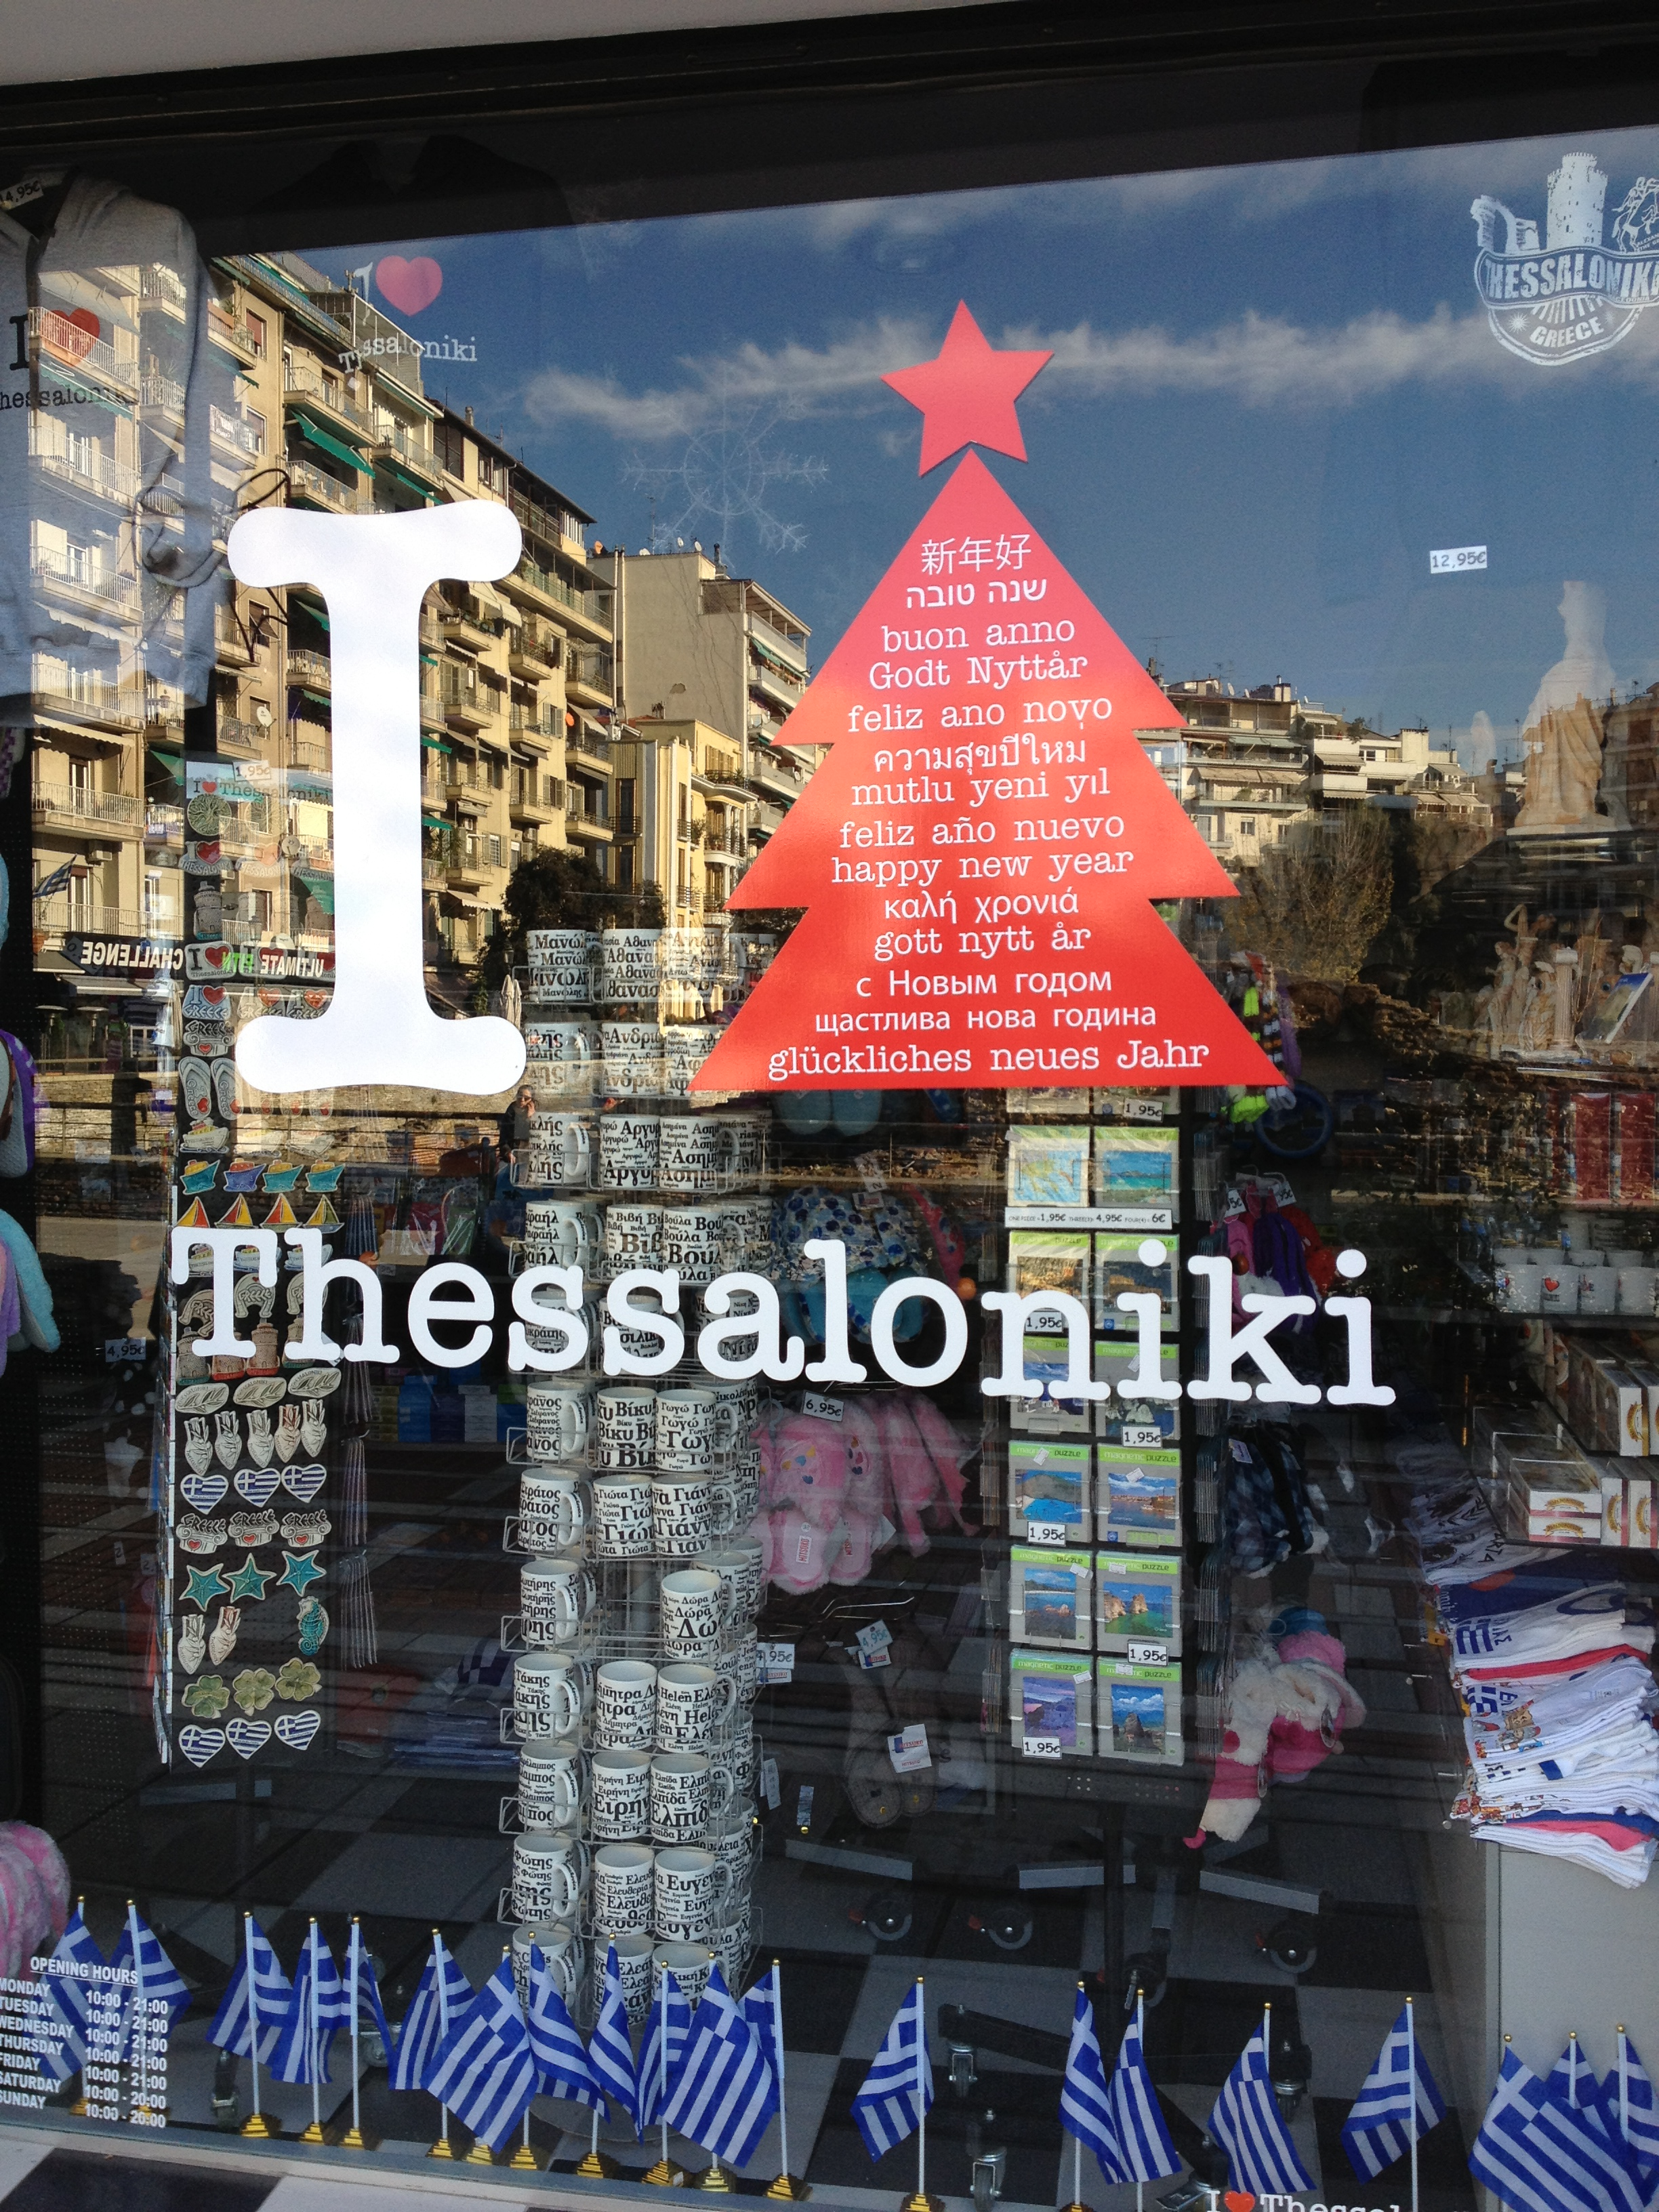 To fall in love with Thessaloniki by Shulamit Sapir-Nevo - Illustrated by Shulamit Sapir- Nevo - Ourboox.com